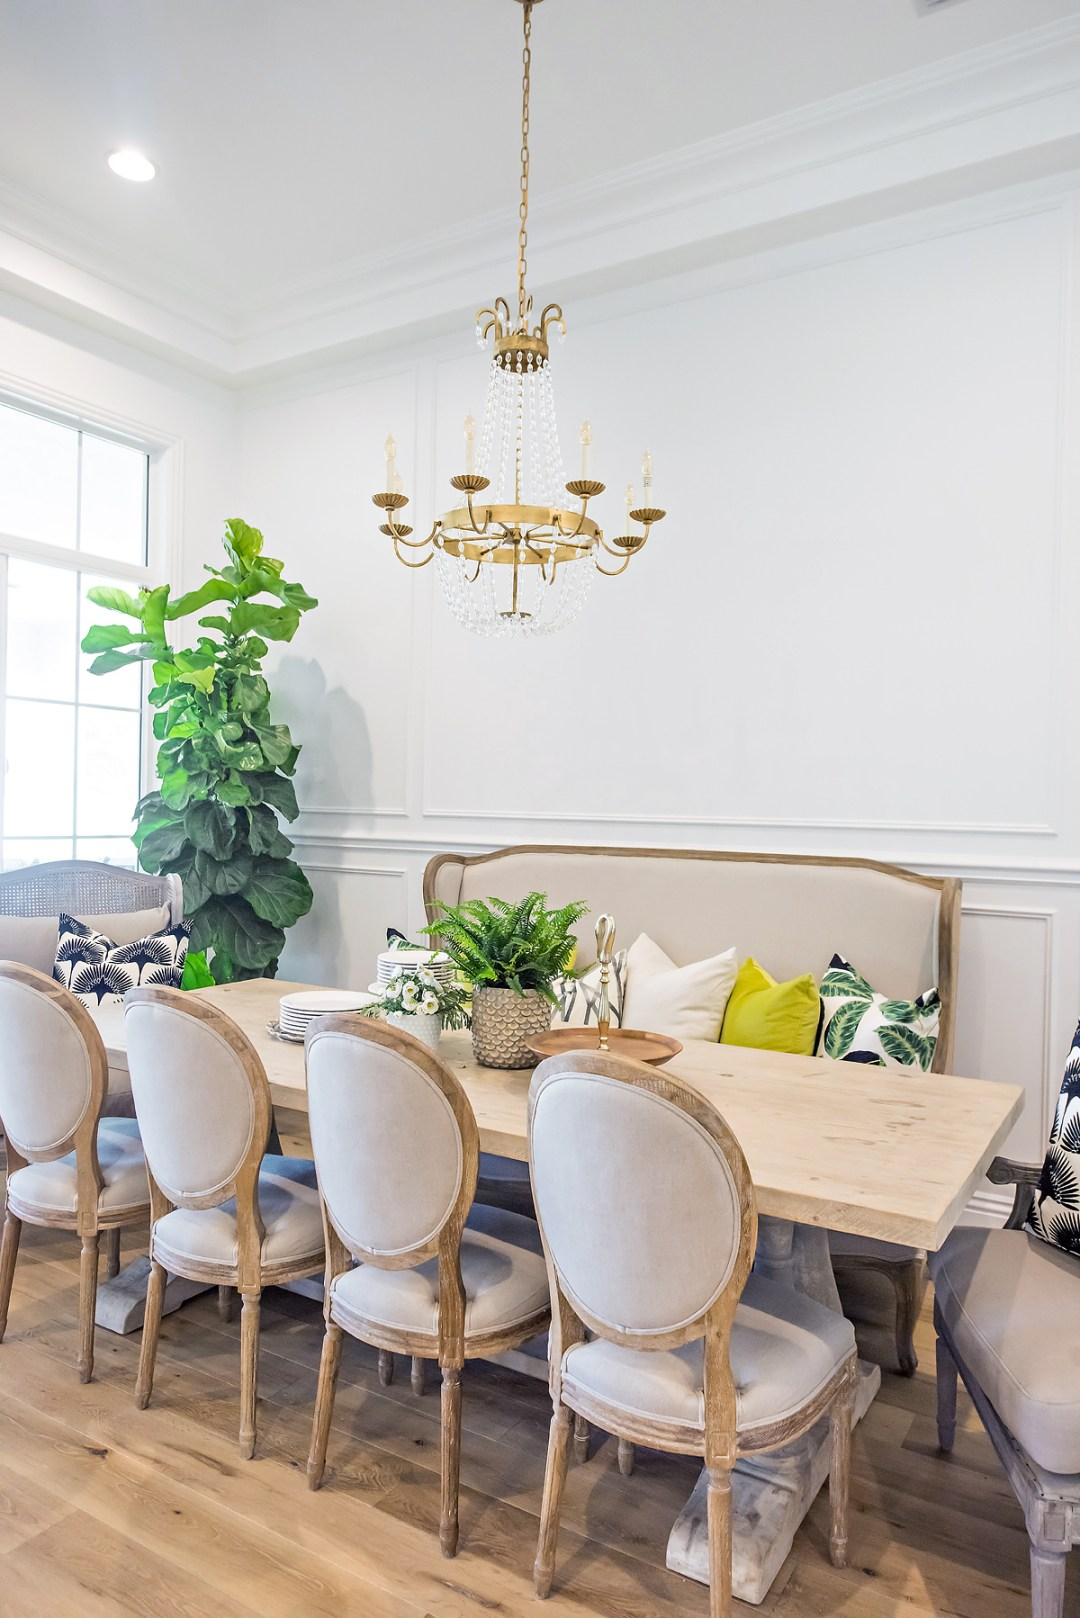 maggie-holmes-dining-room-makeover-with-color-14